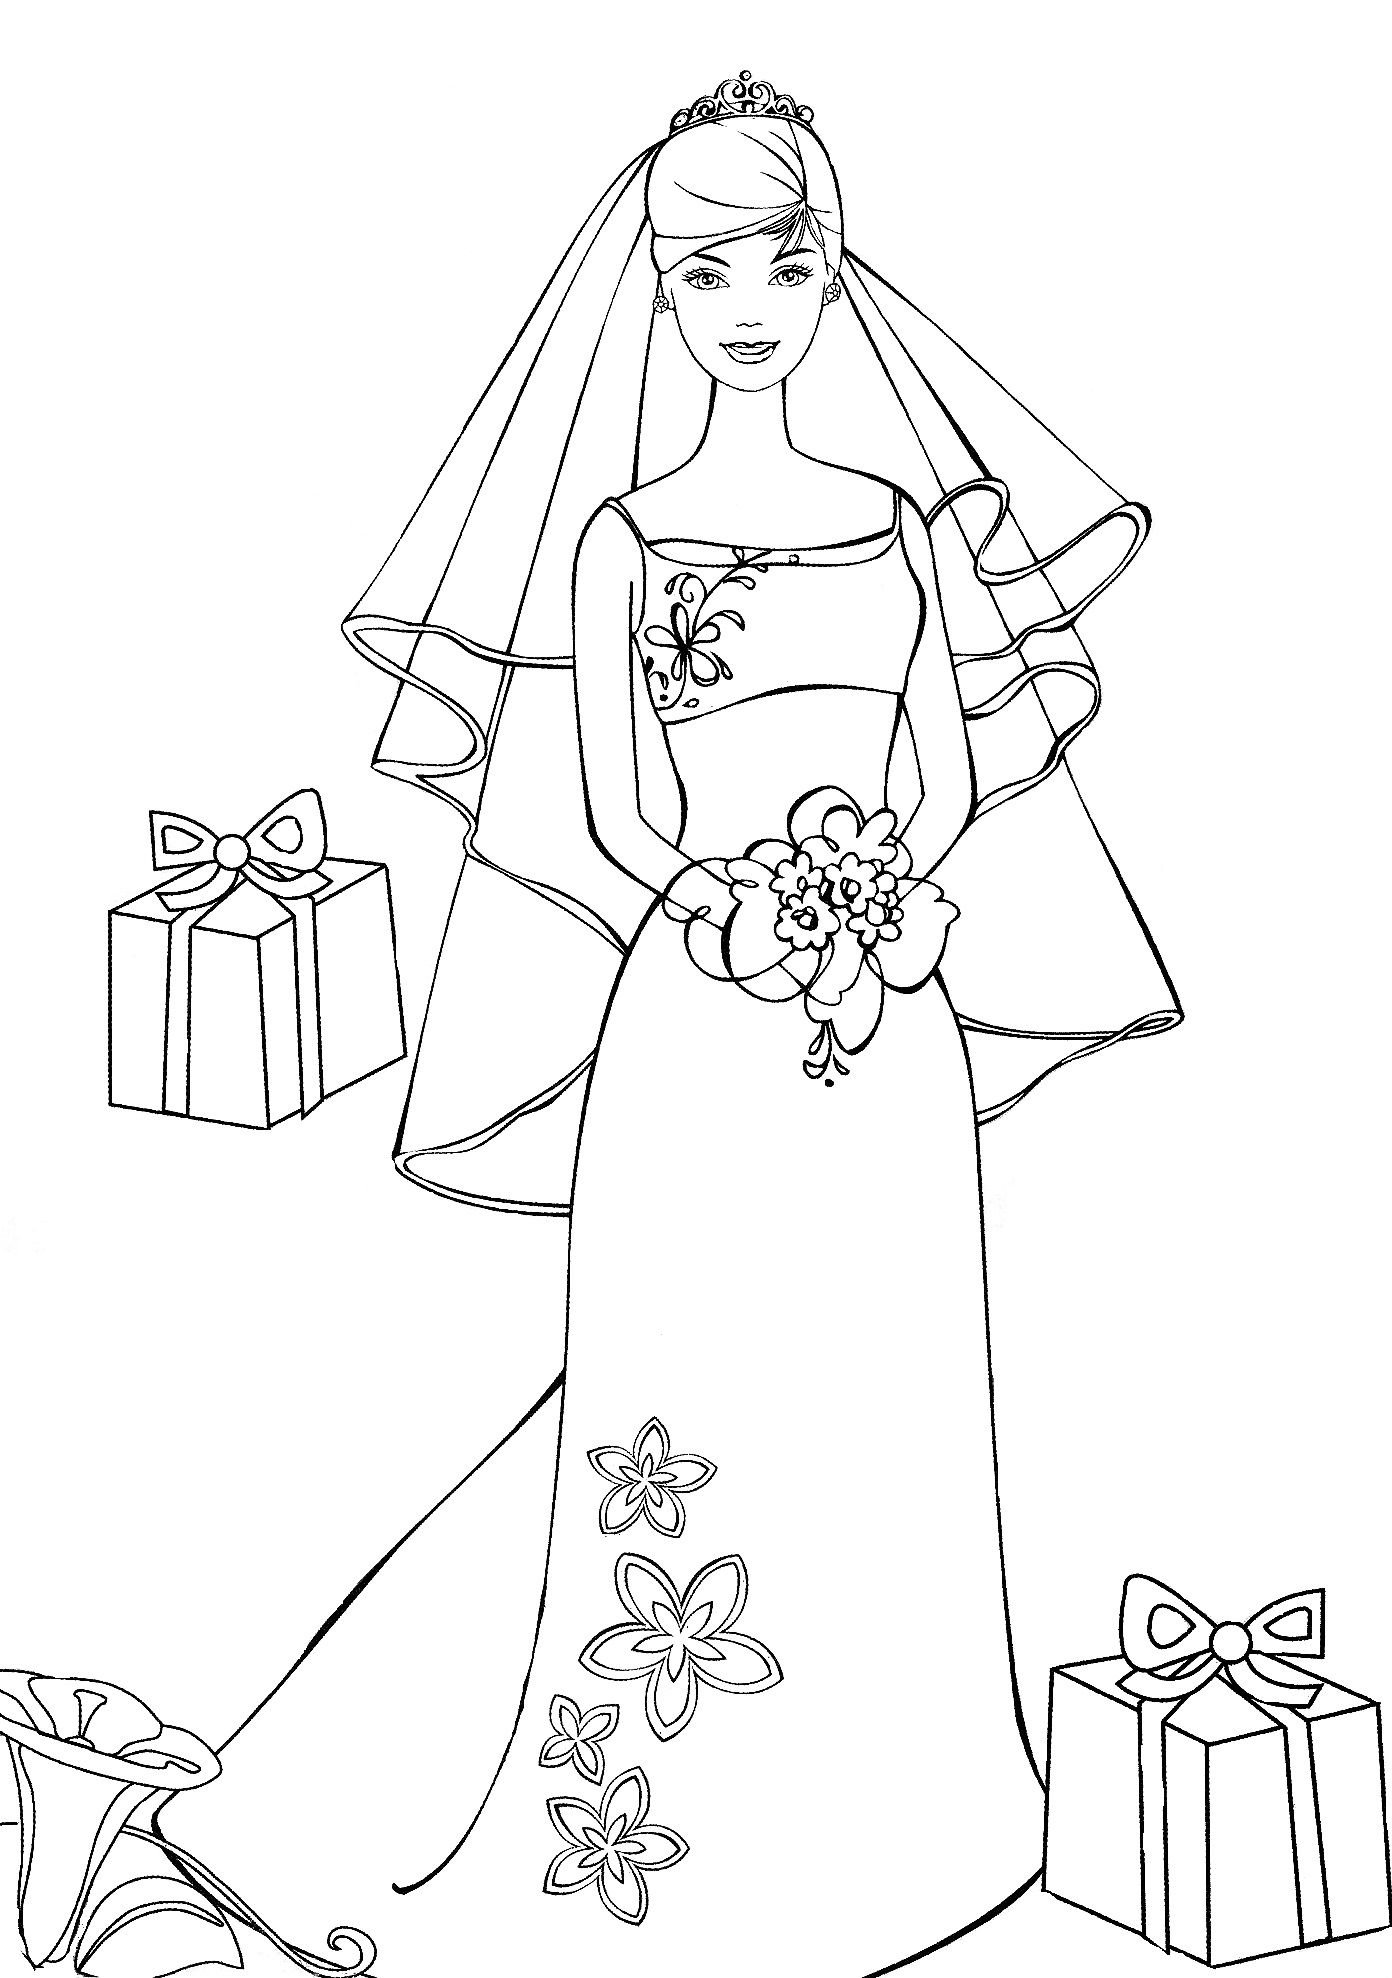 Pin By Lori Reynolds On Barbie Coloring Part 2 Barbie Coloring Pages Coloring Pages Coloring For Kids